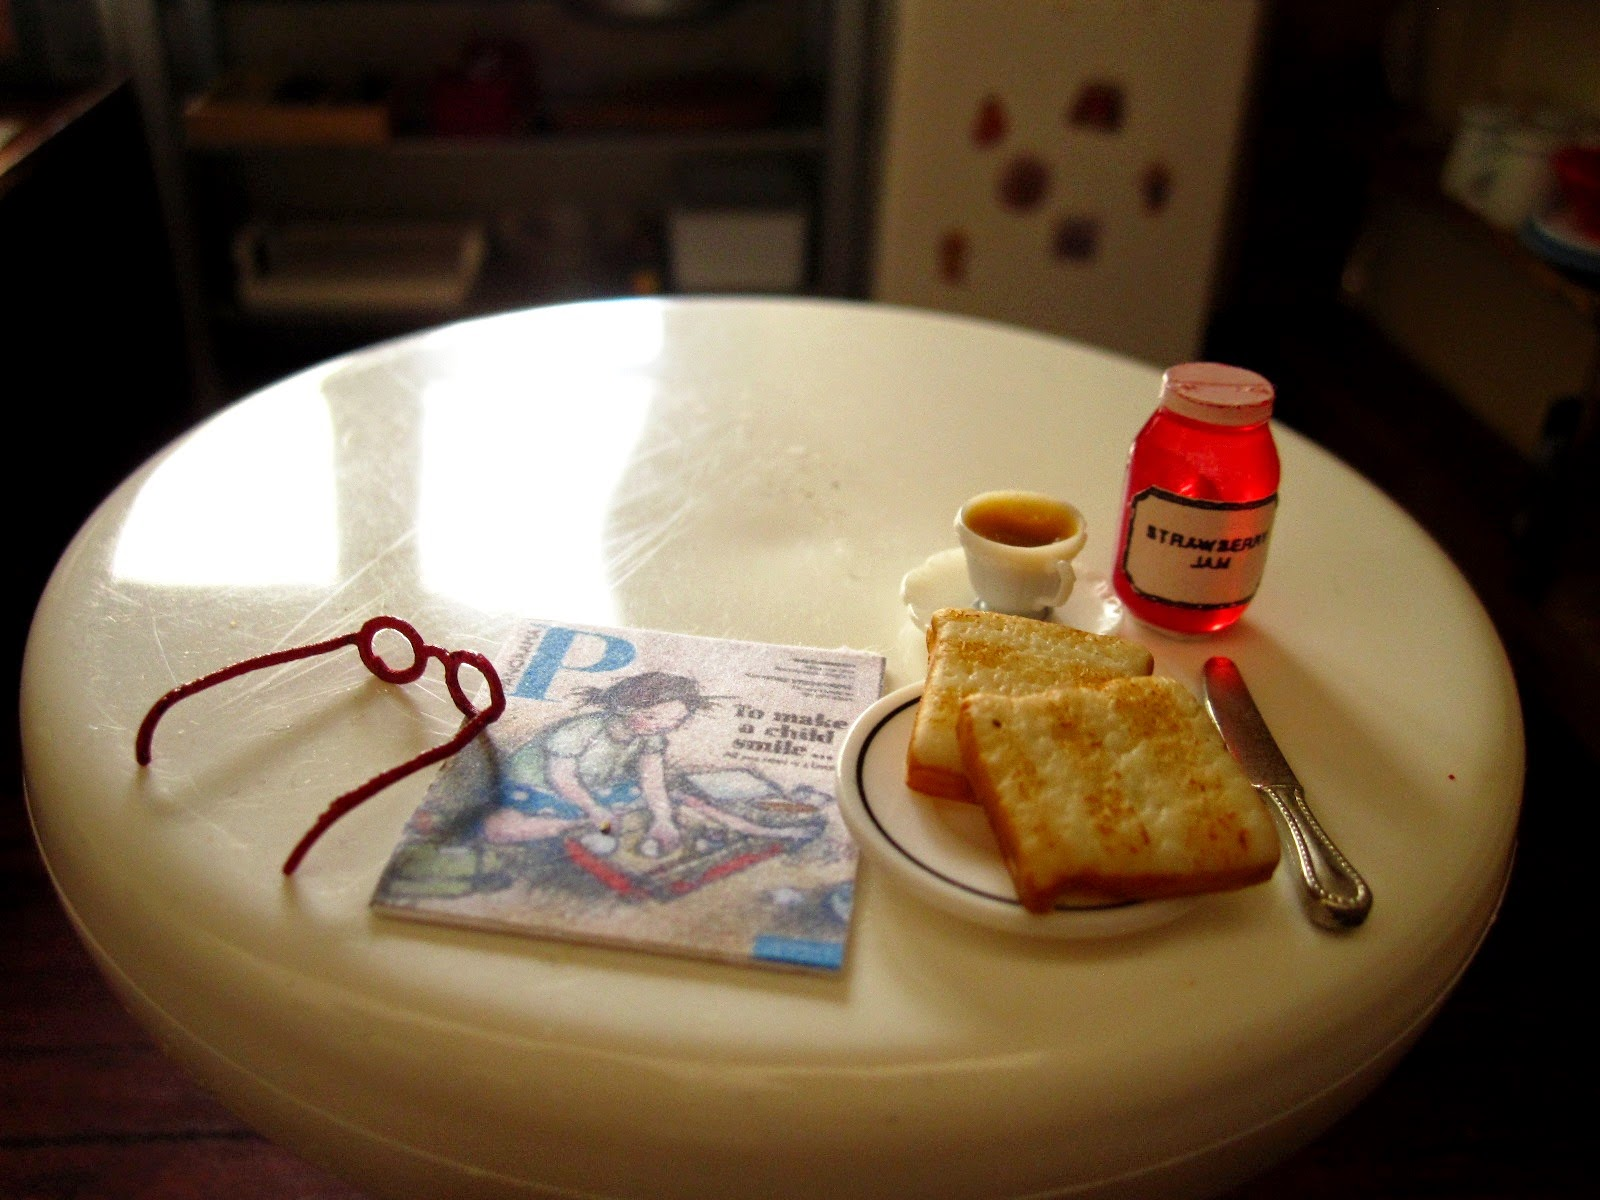 Modern miniature round kitchen table with reading glasses and magazine plus tea, toast and jam.